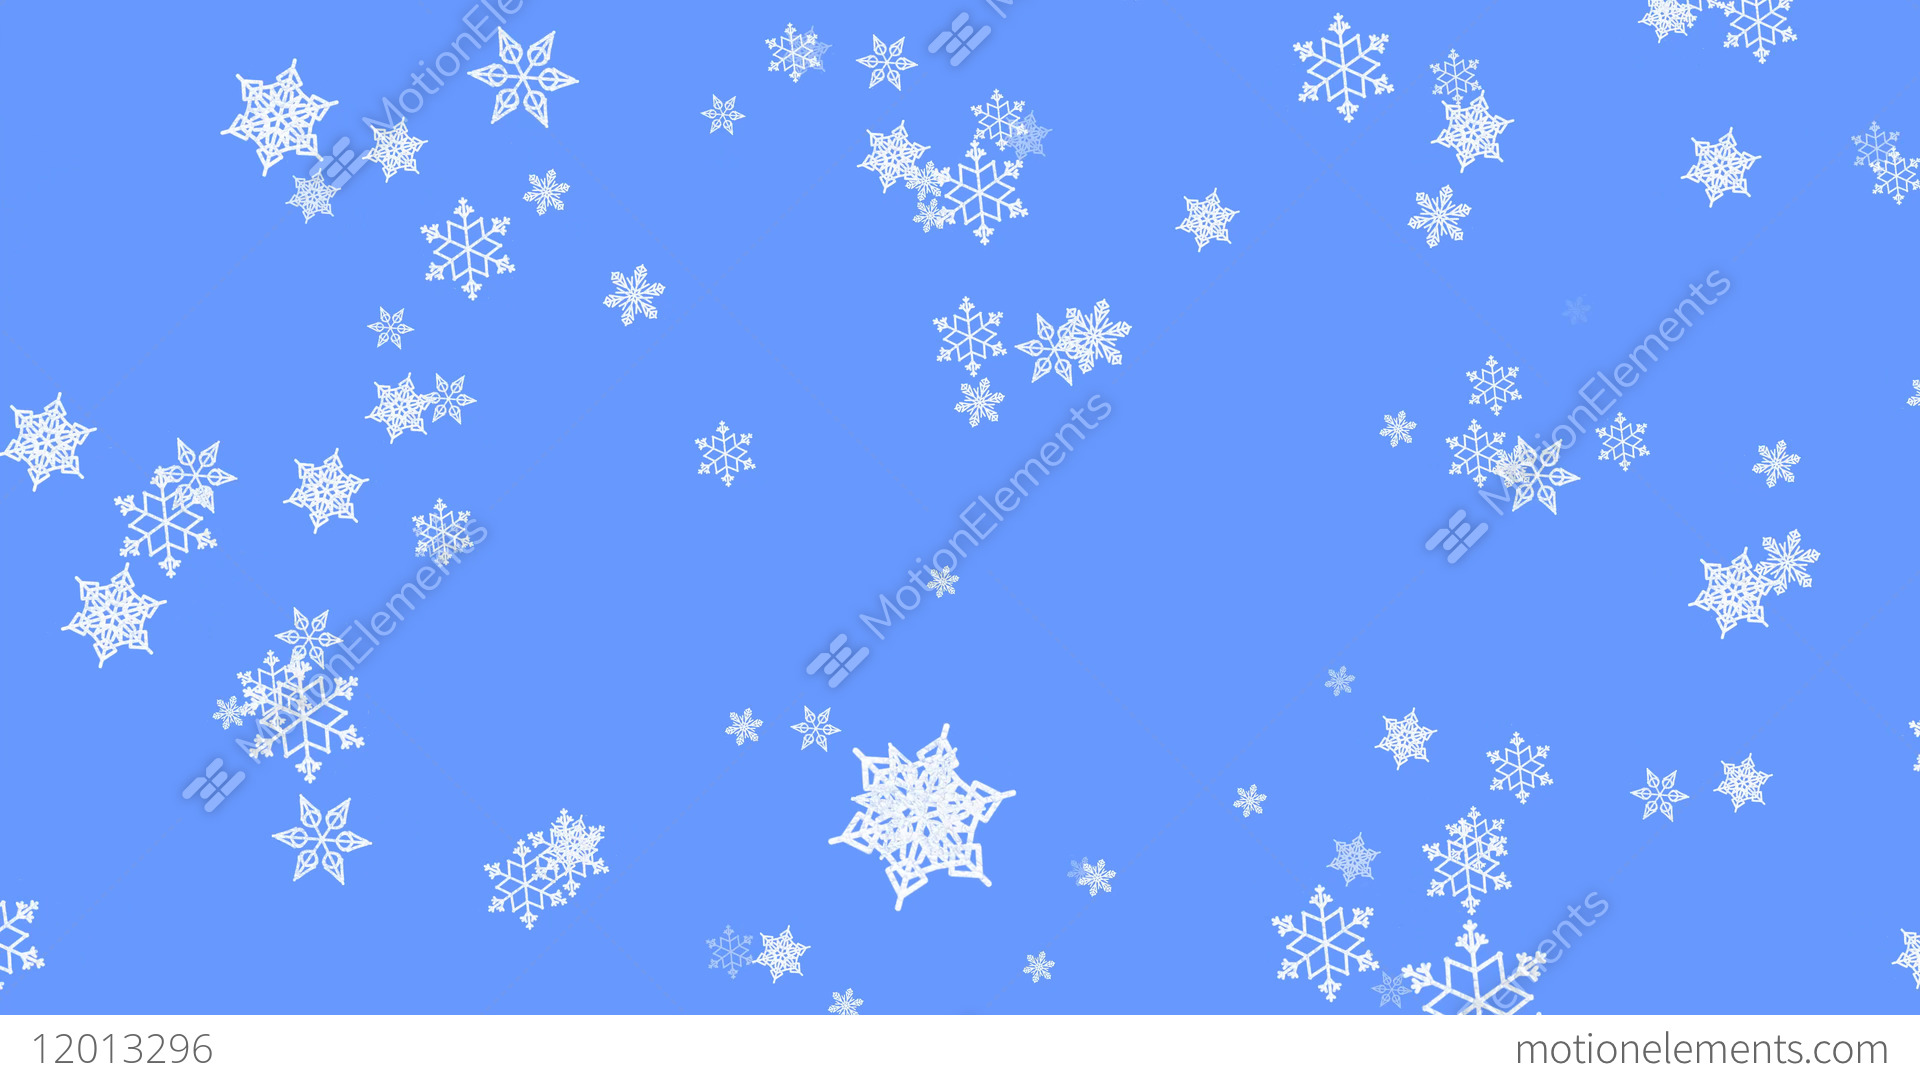 snowflake particles on light blue background flying snow